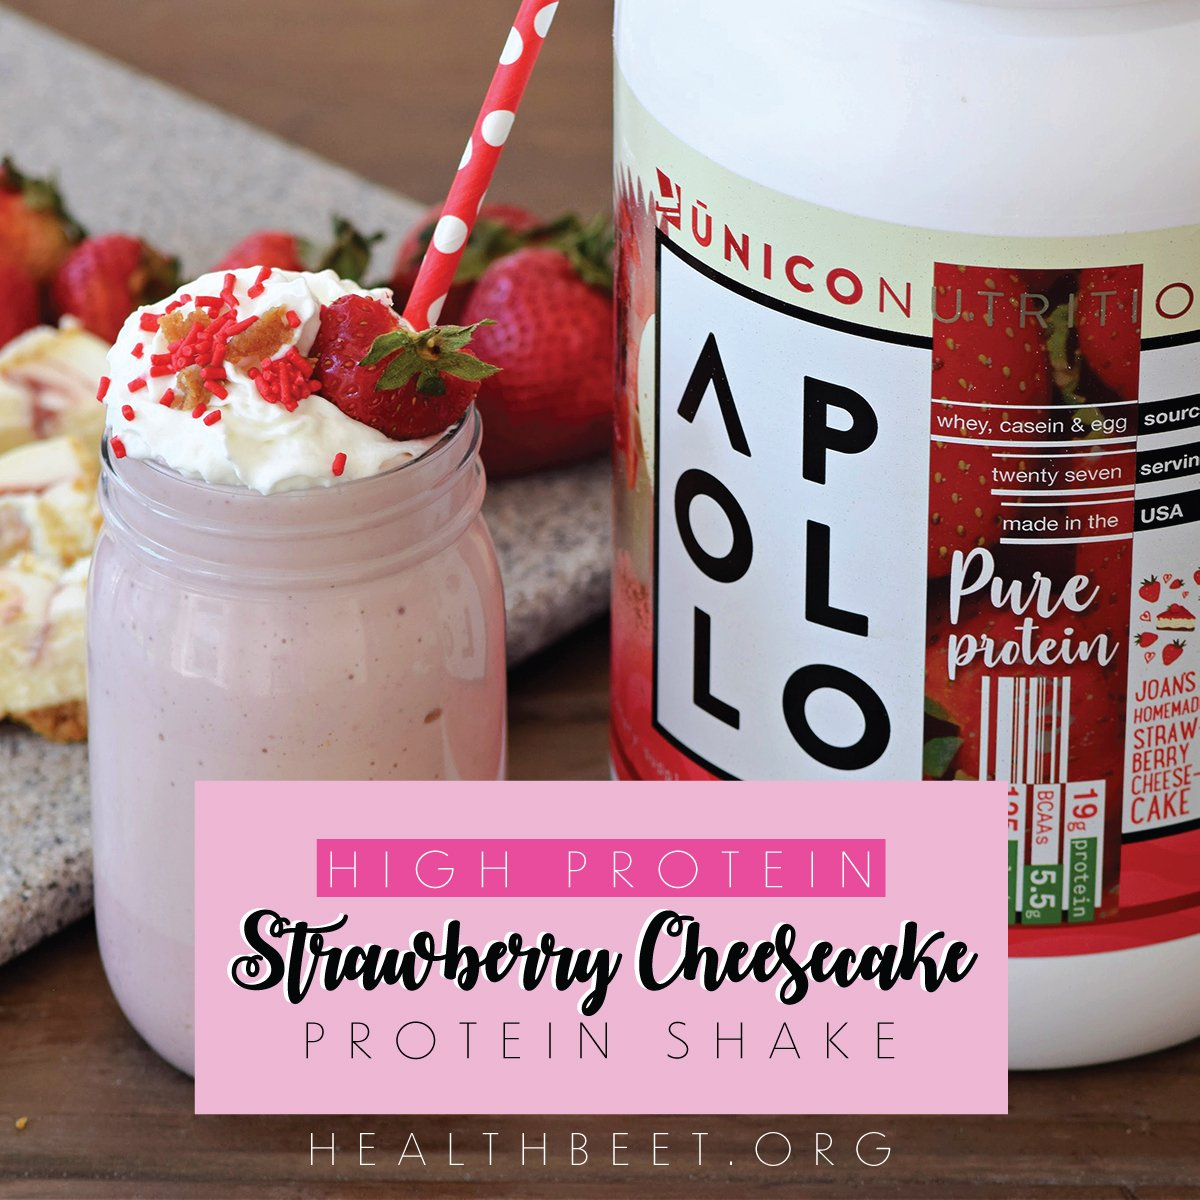 Strawberry Cheesecake Protein ShakeThumb 1200x1200